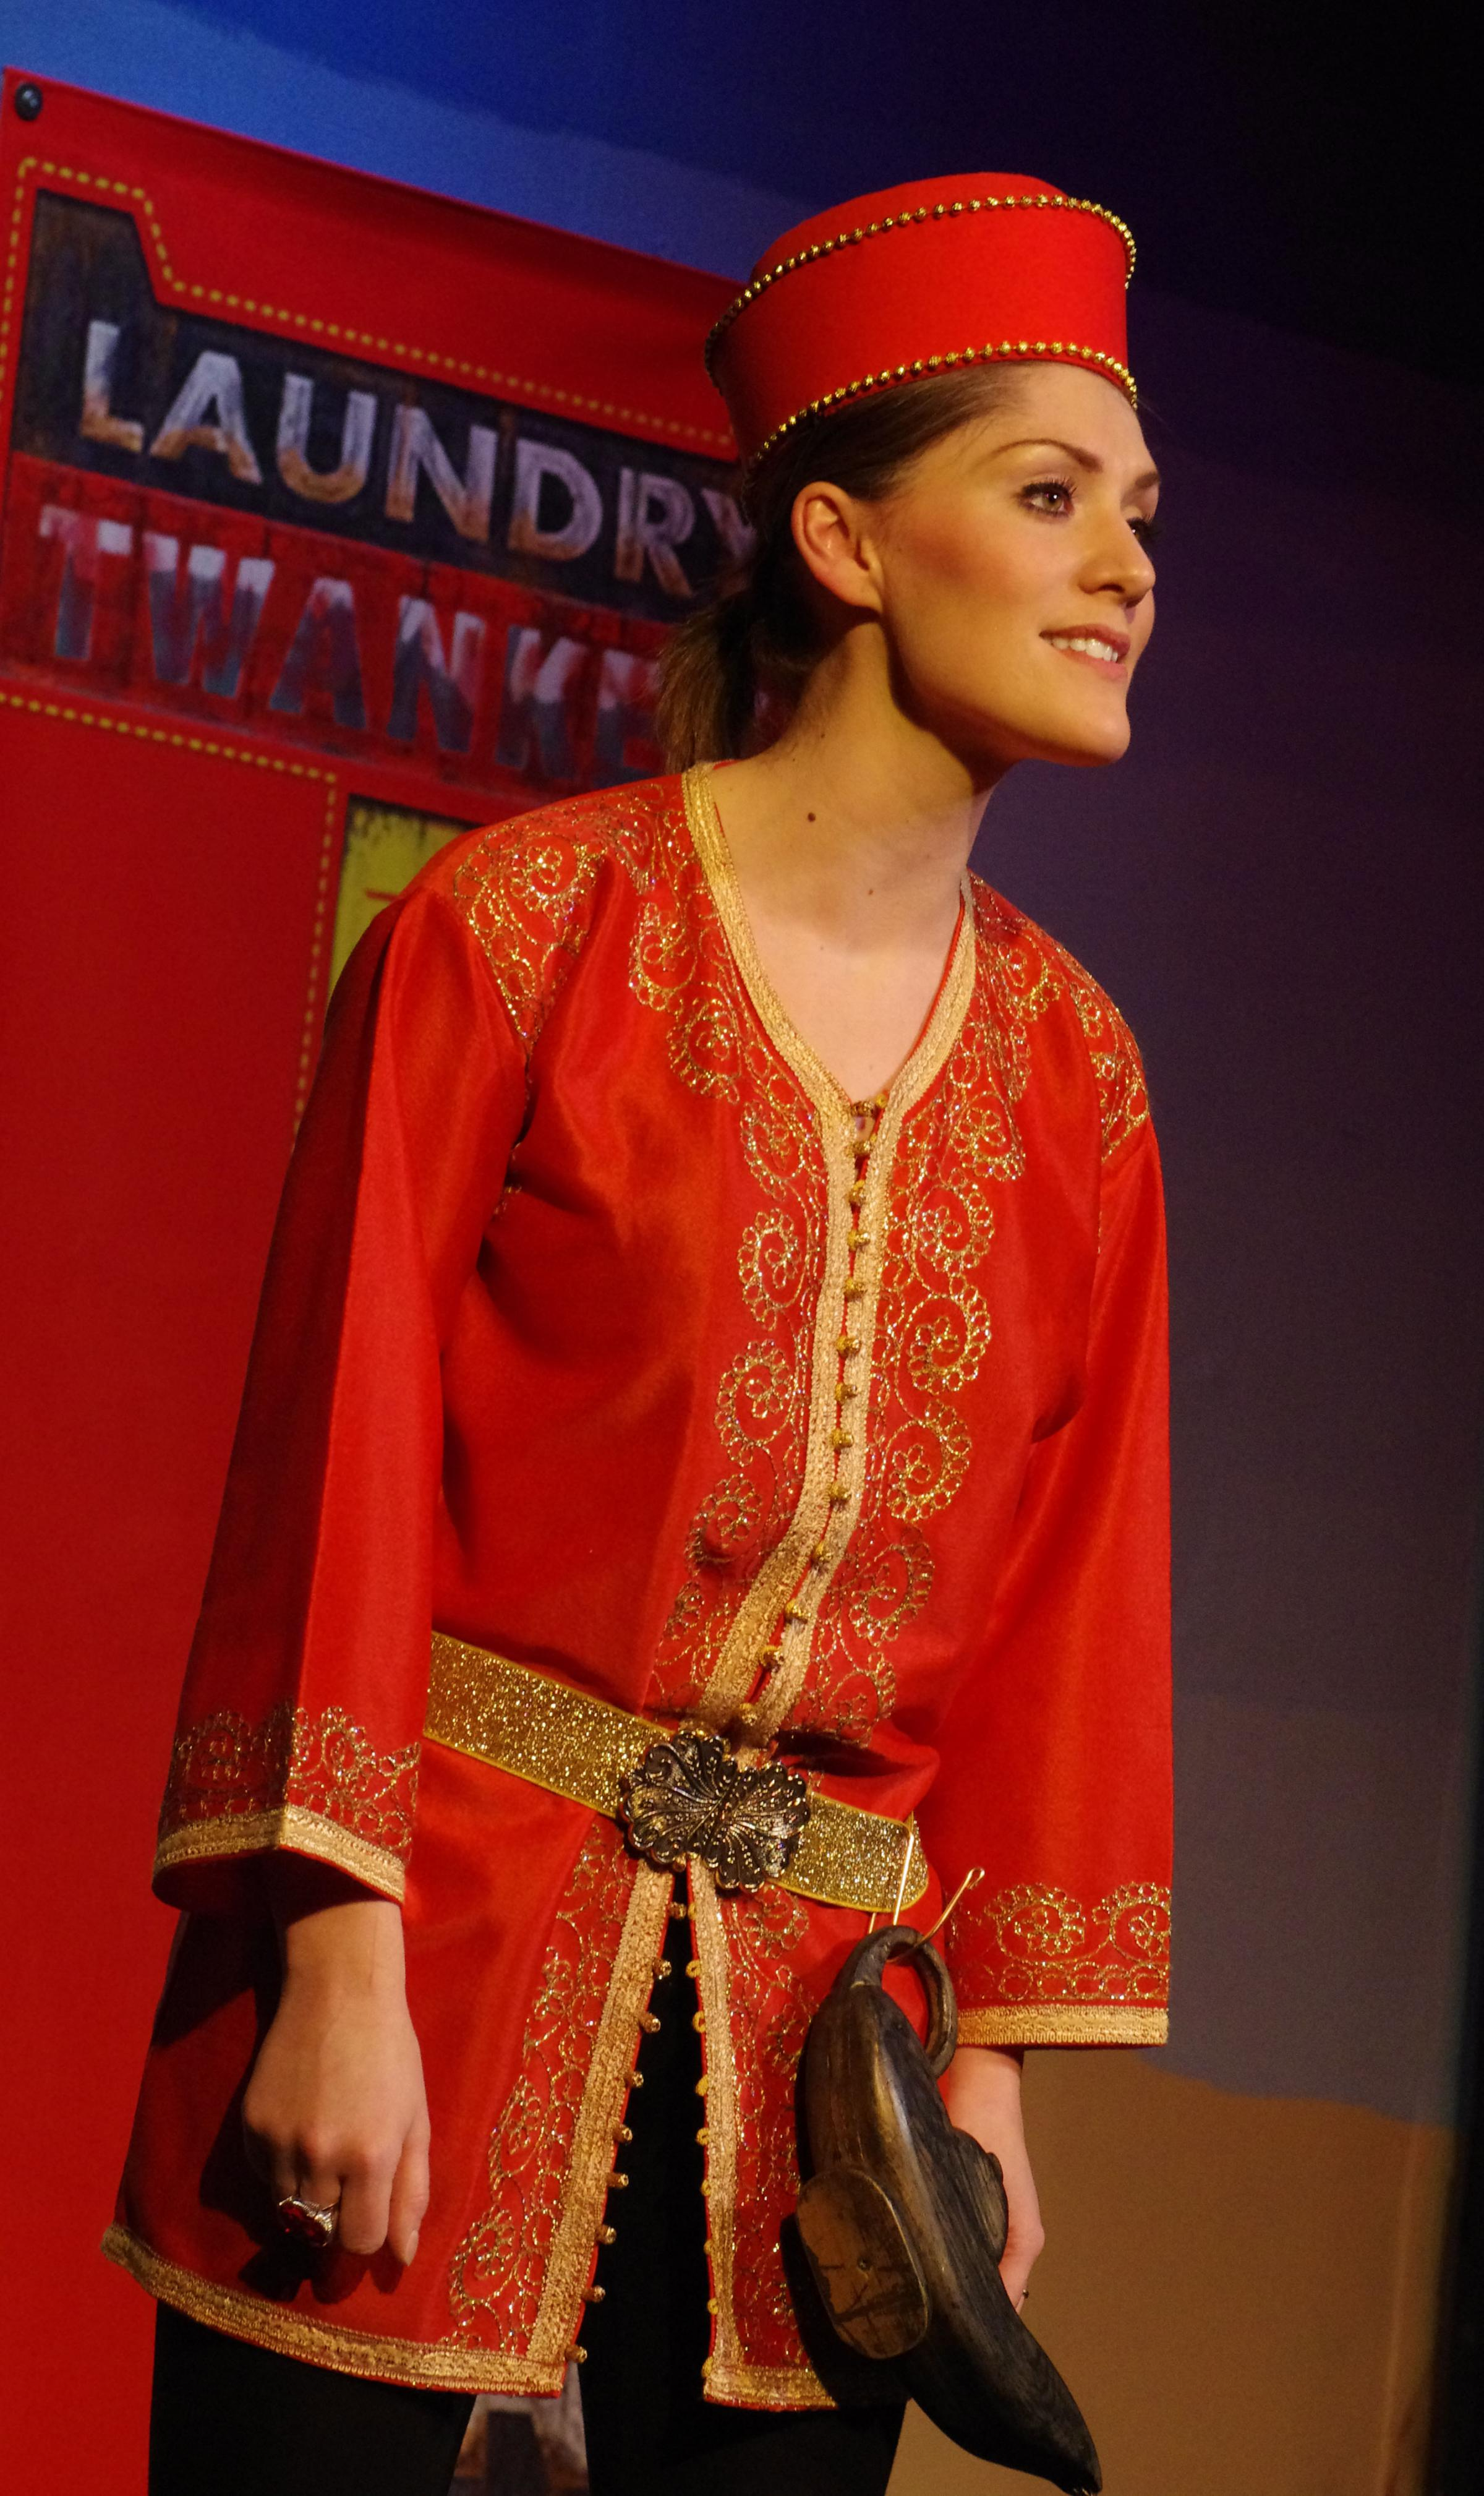 Aladdin, played by Hannah Louise Long, who won Best Principal Boy in this year's Wharfedale Festival of Theatre awards